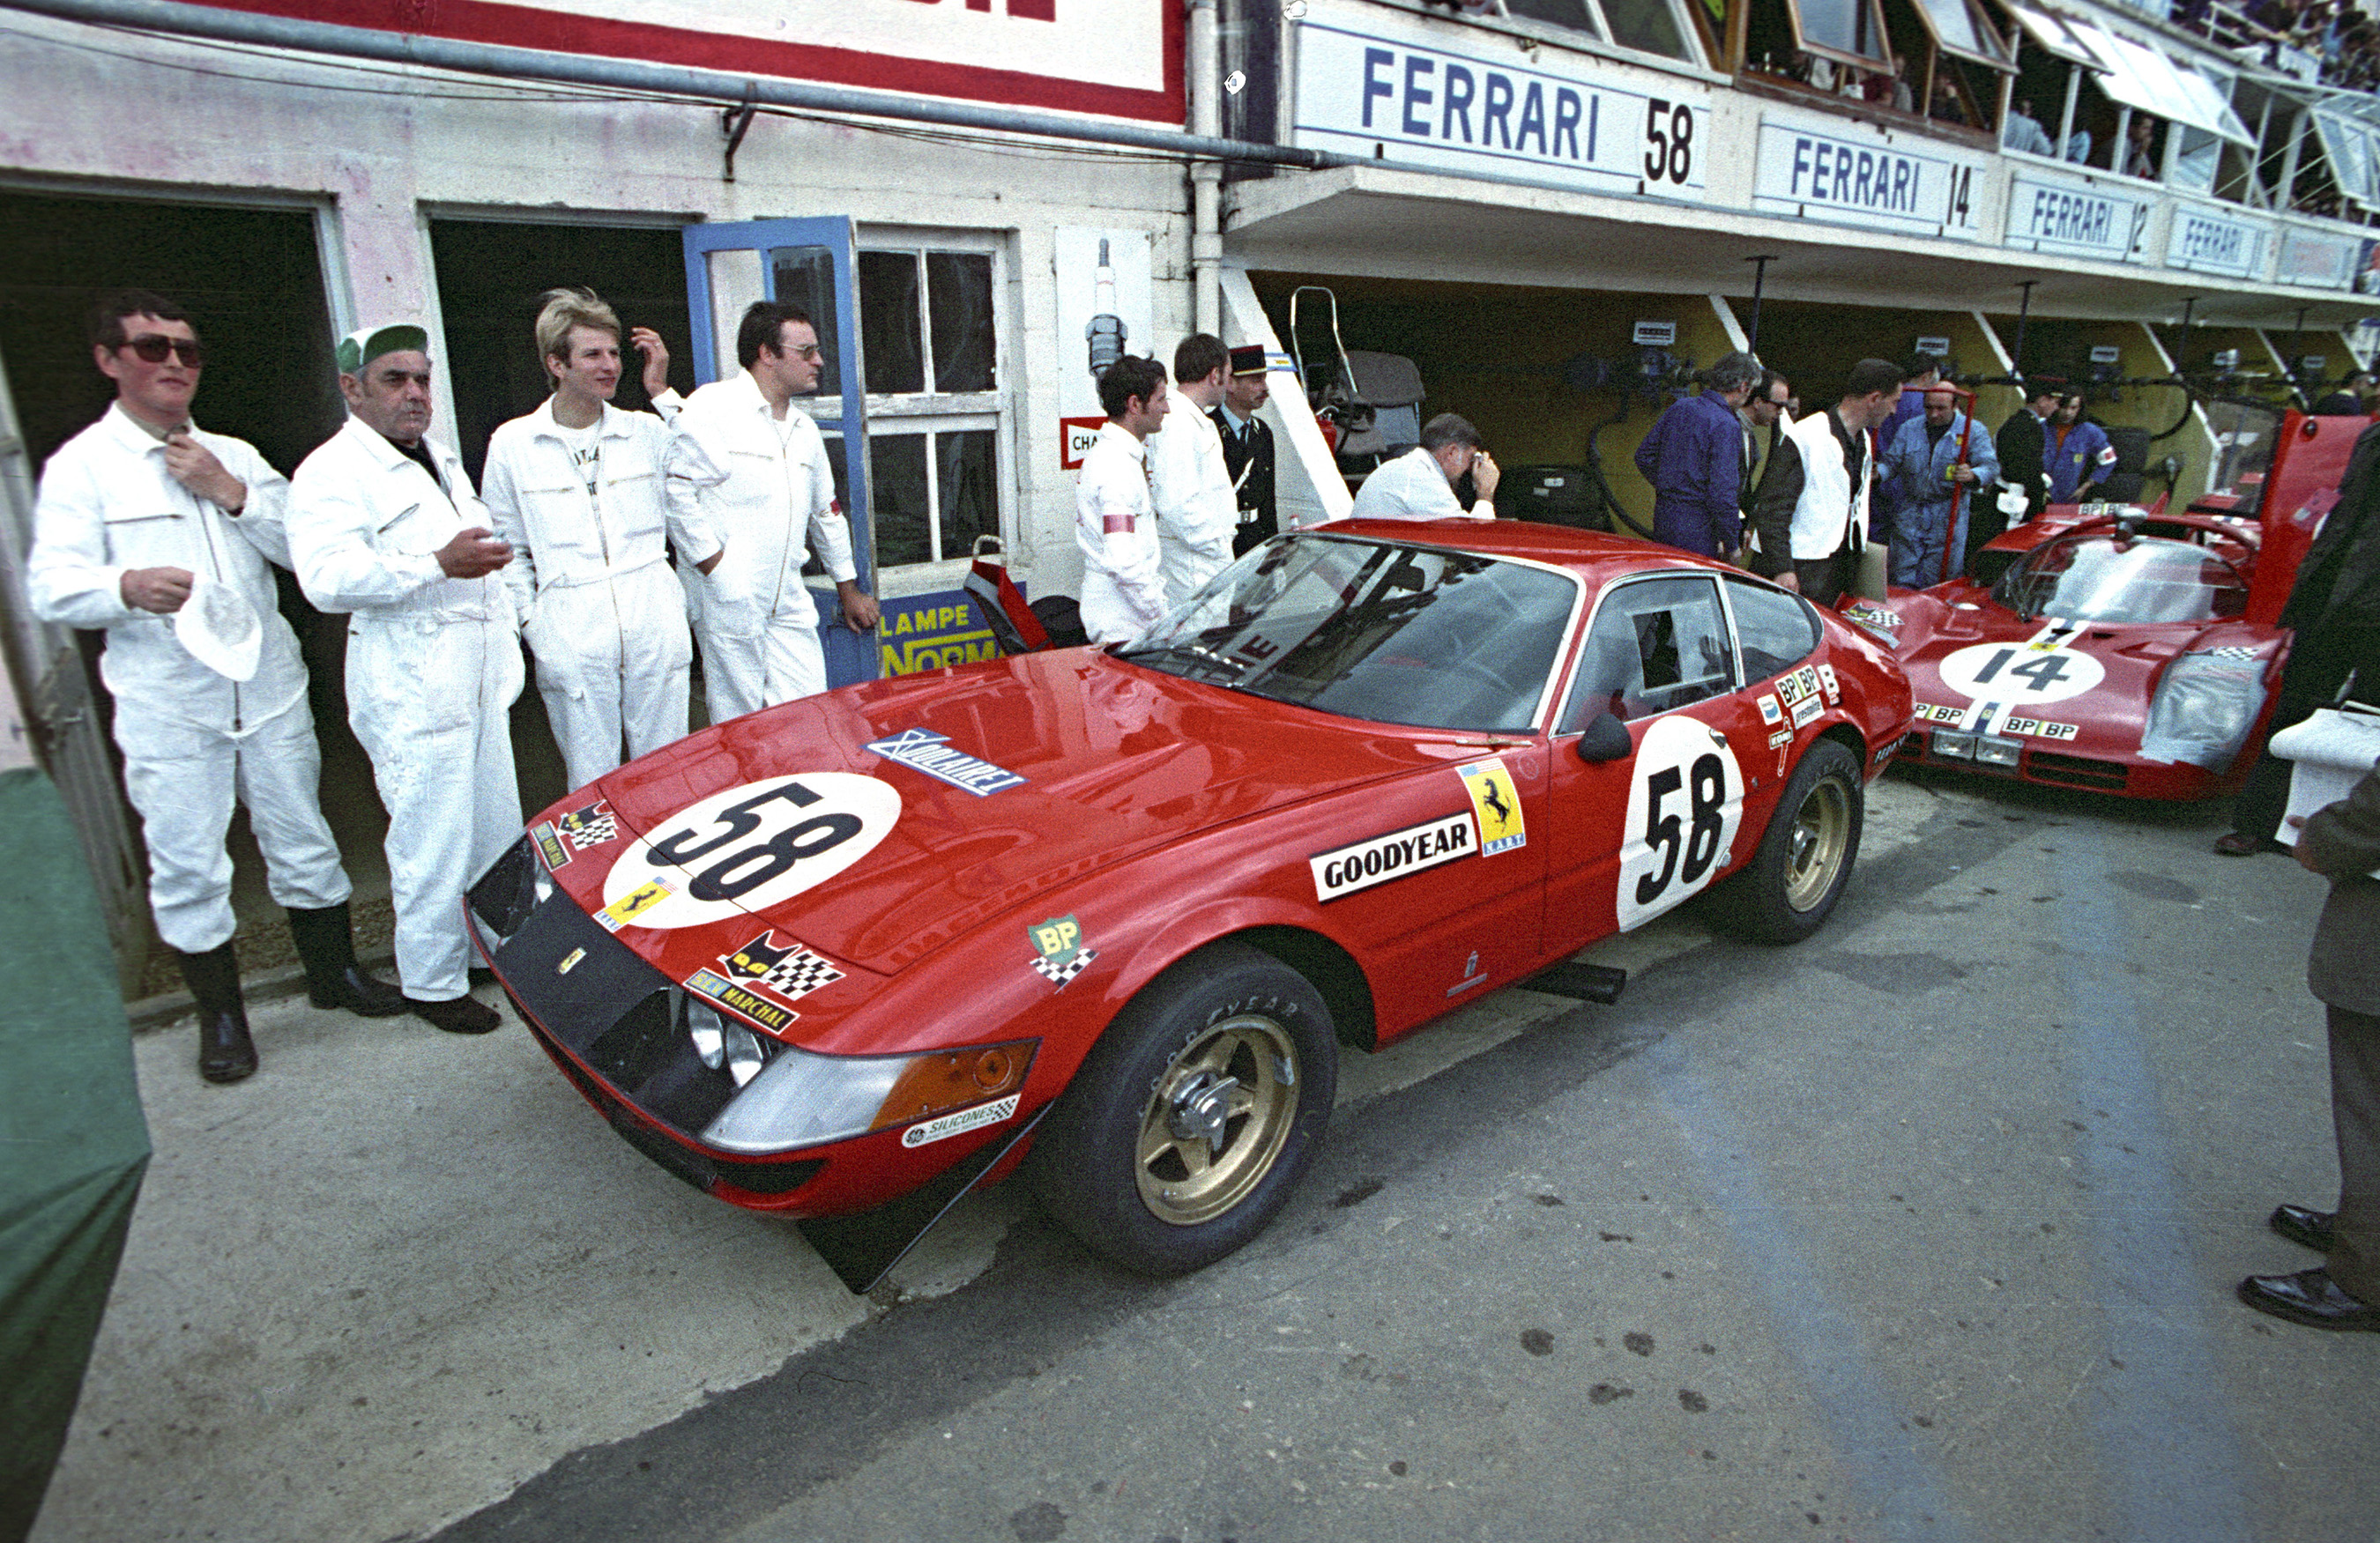 Ferrari Chassis 12467 After taking 5th overall at 1971 24 hours of Le Mans wins the Index of Thermal Efficiency